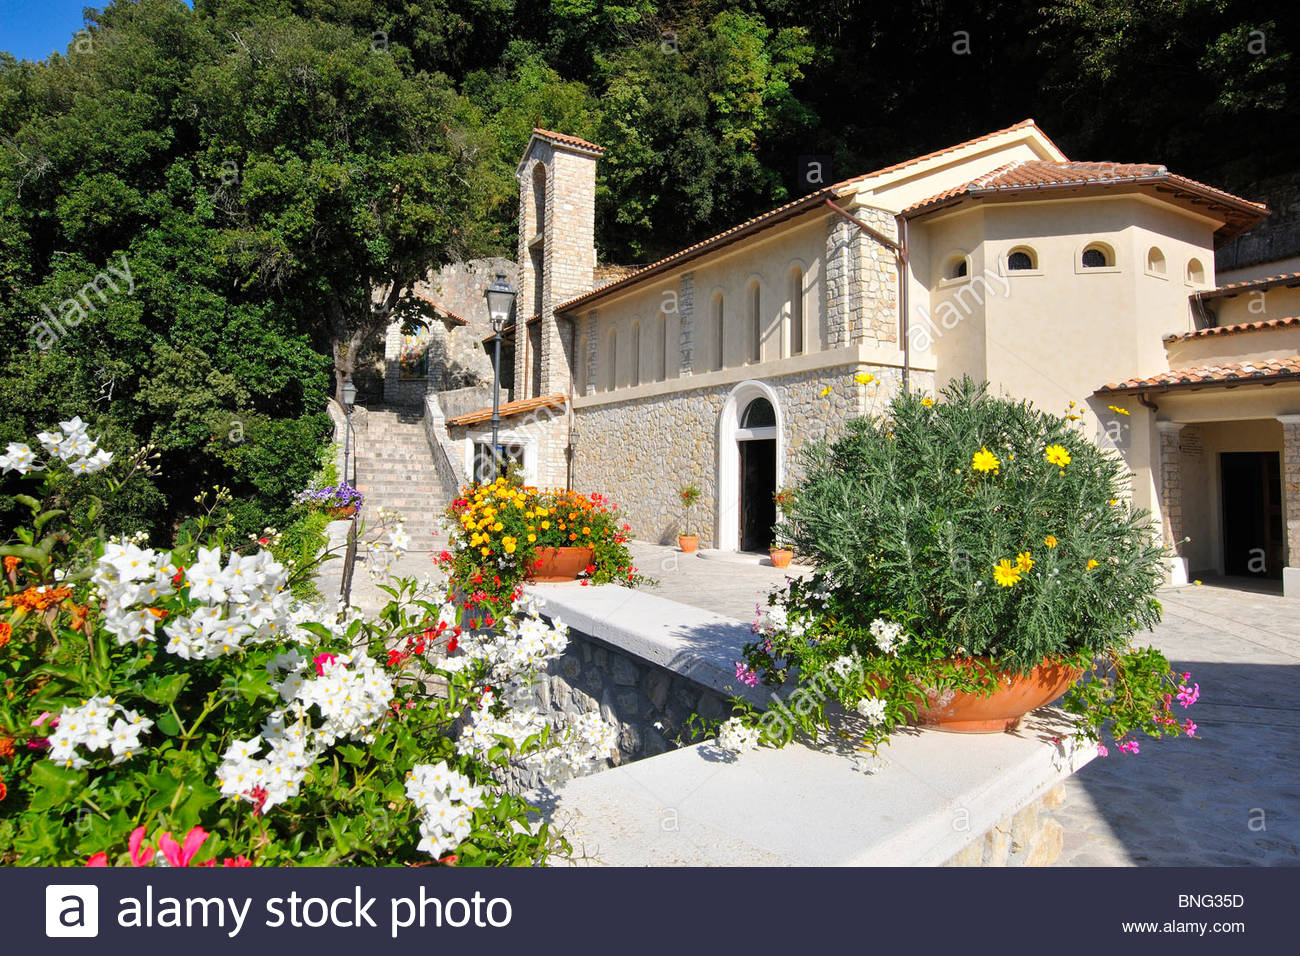 Shrine of St. Francis,Greccio,Lazio,Italy - Stock Image